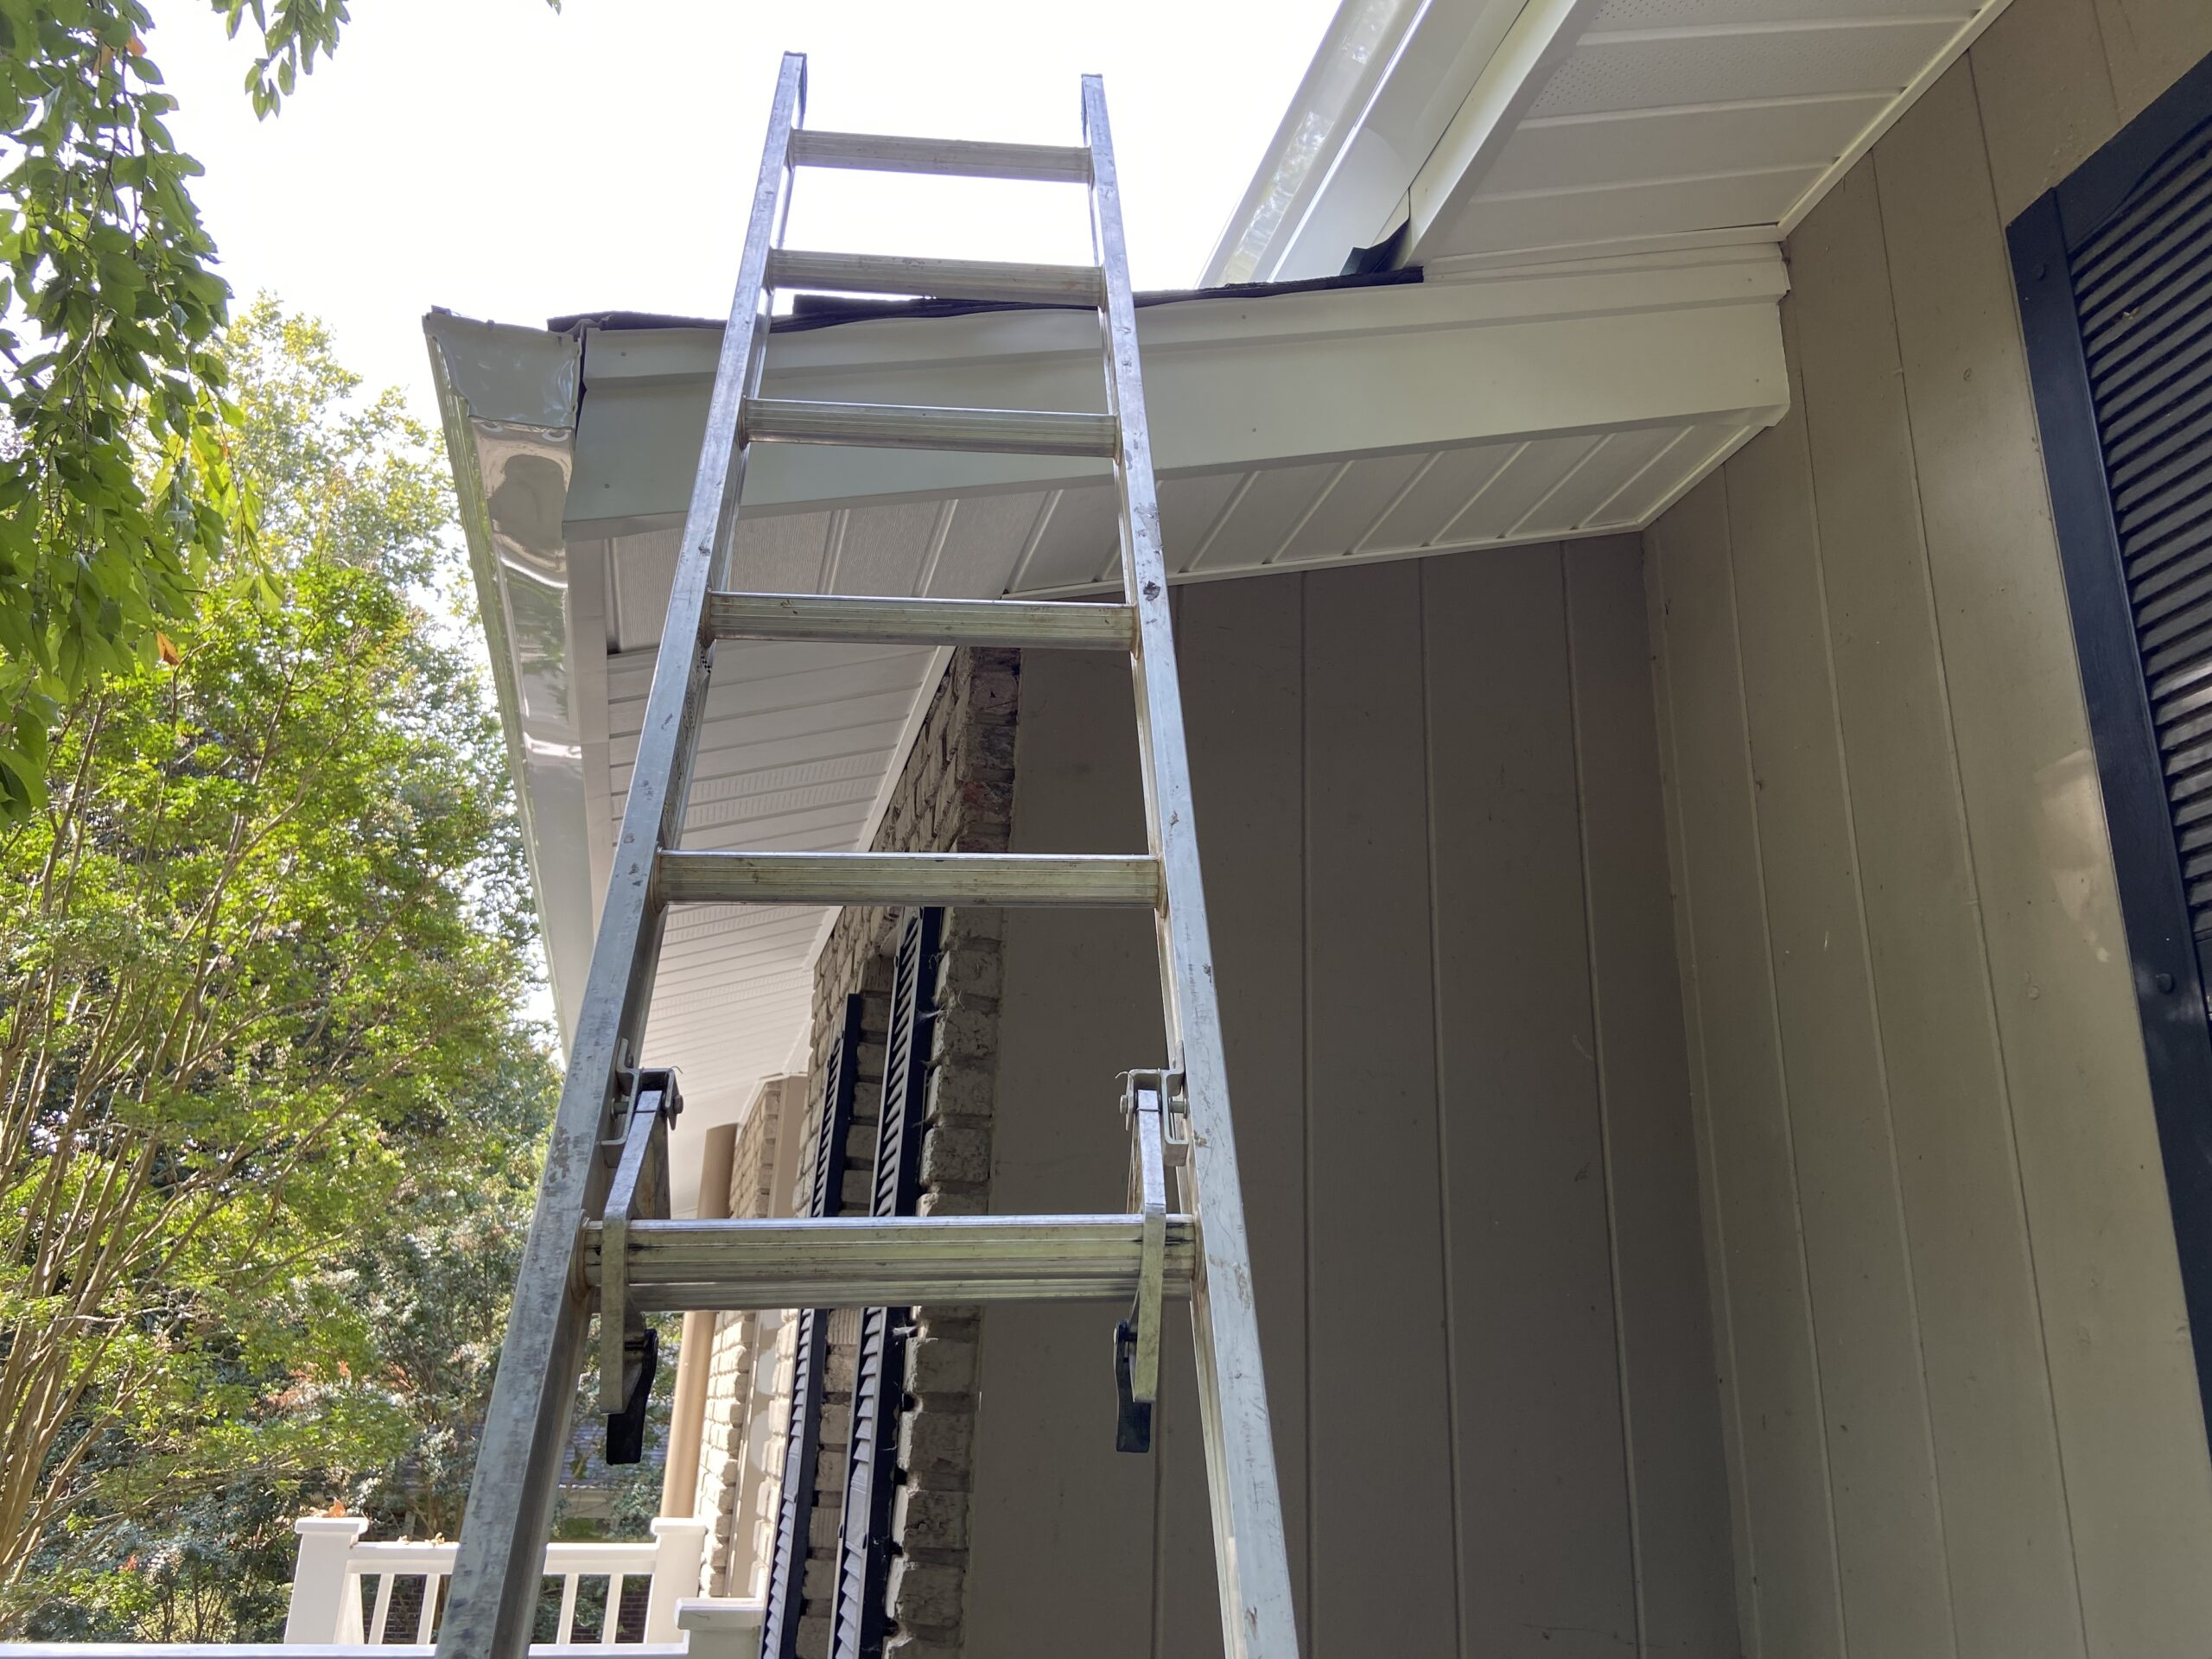 This is a picture of the new soffits they are white and color and there is a ladder in the foreground